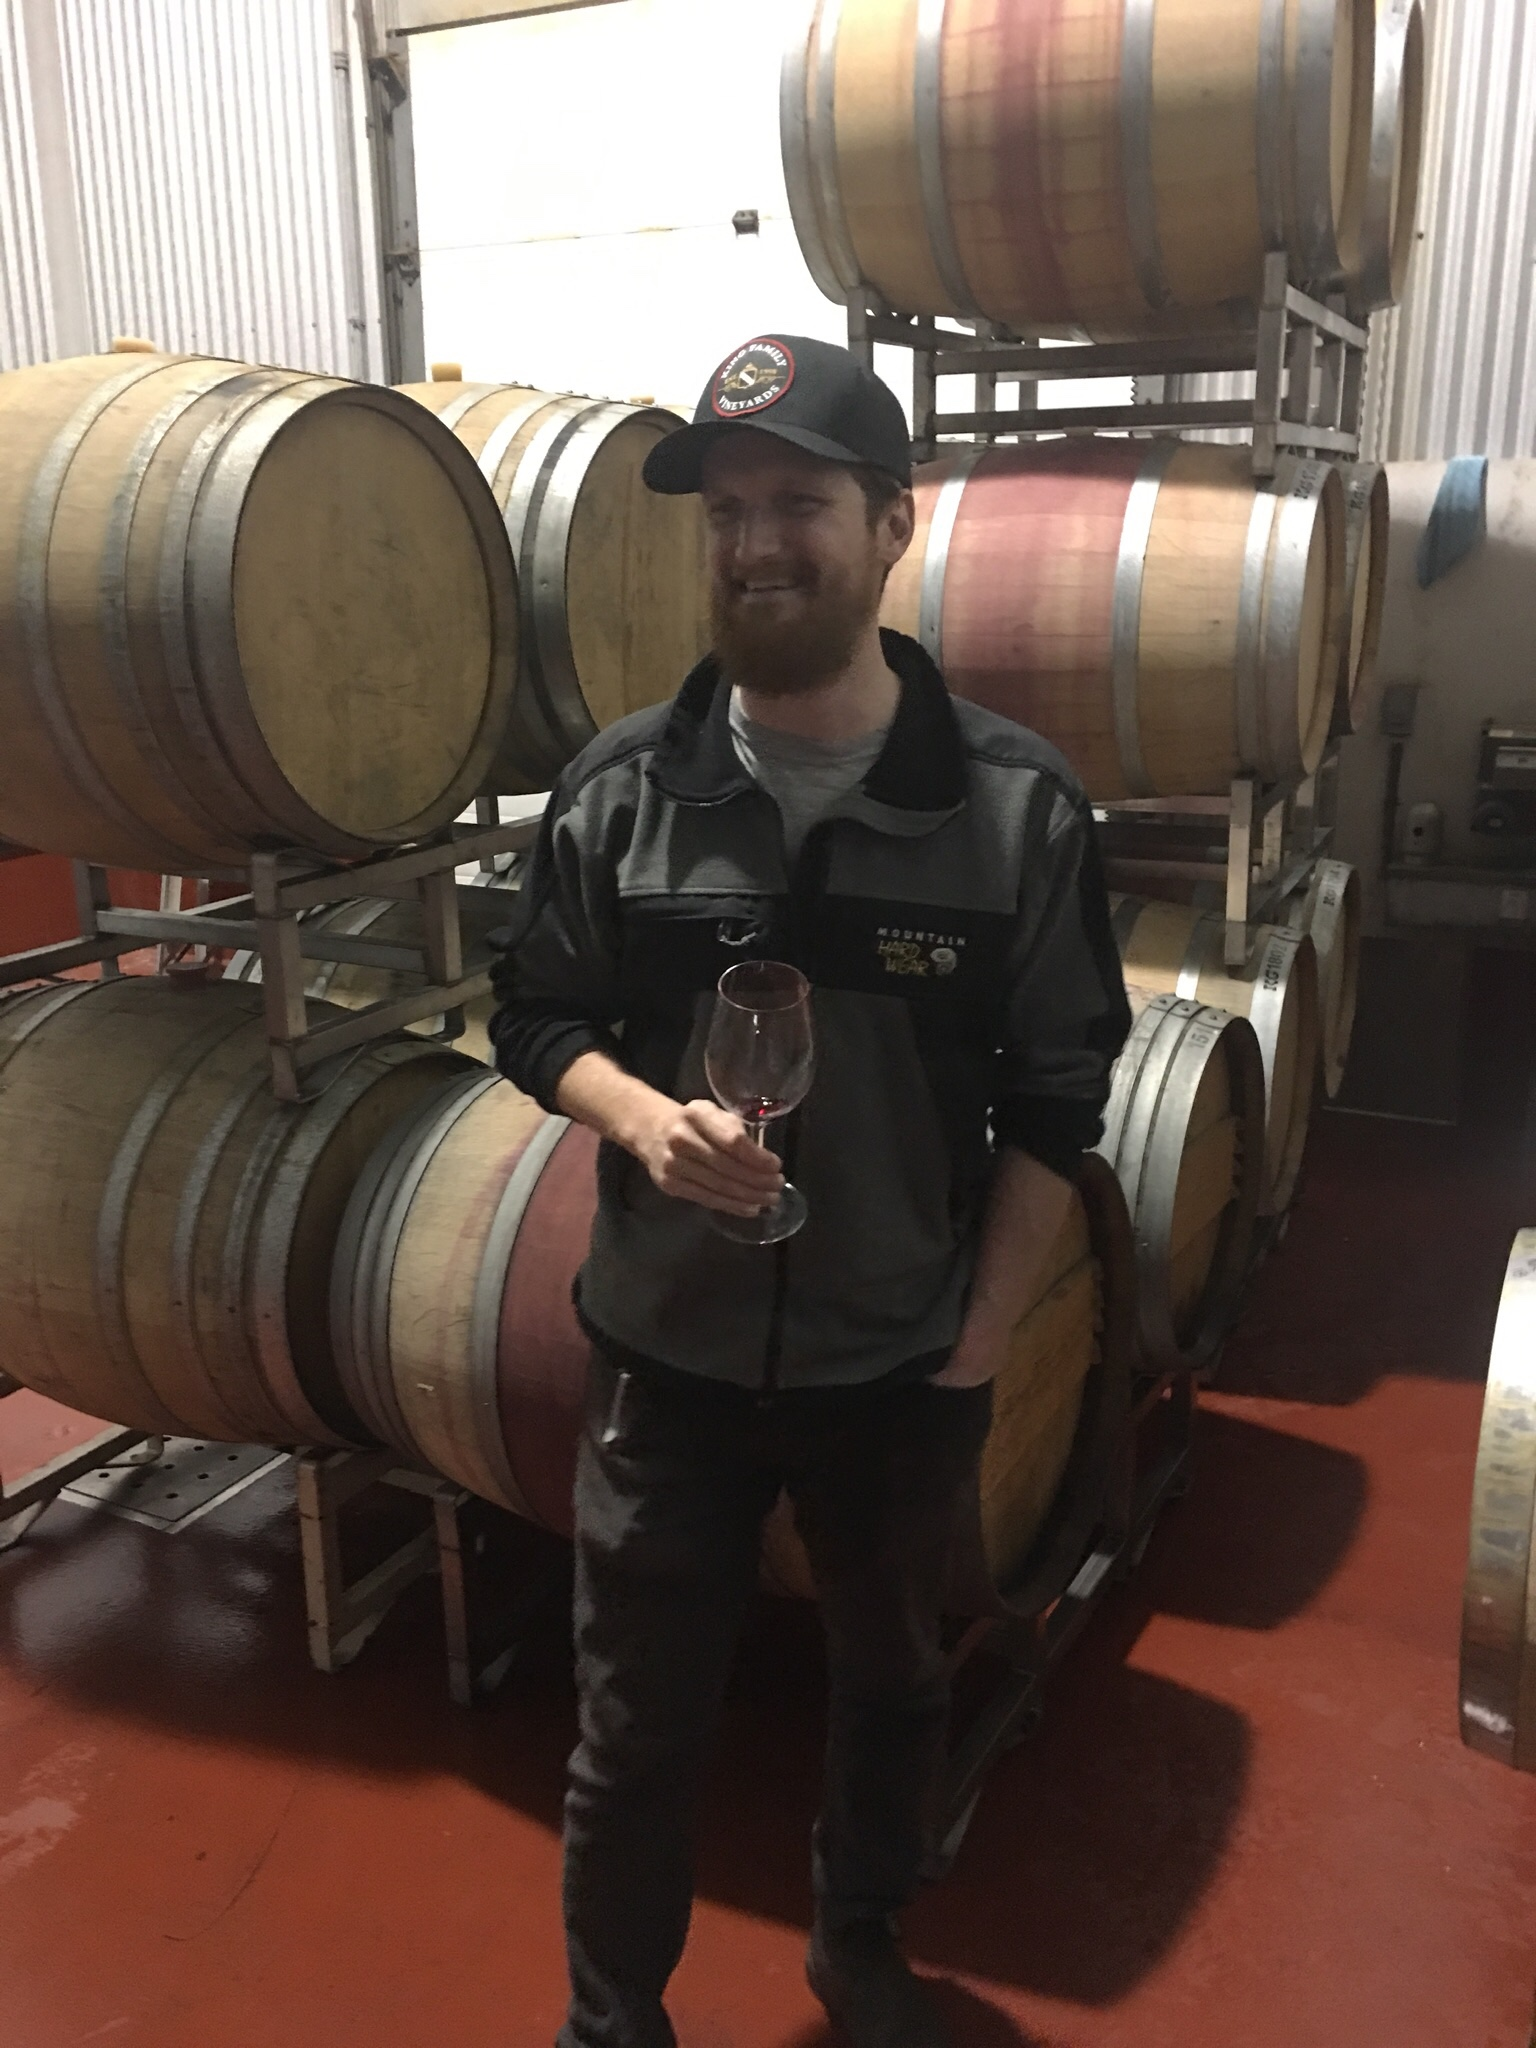 Michael McGeary, former assistant winemaker for King Family Vineyards now head winemaker at Rocklands Farm Winery in Poolesville MD. He's smiling, but sad inside since his glass of MAV 2018 is empty.